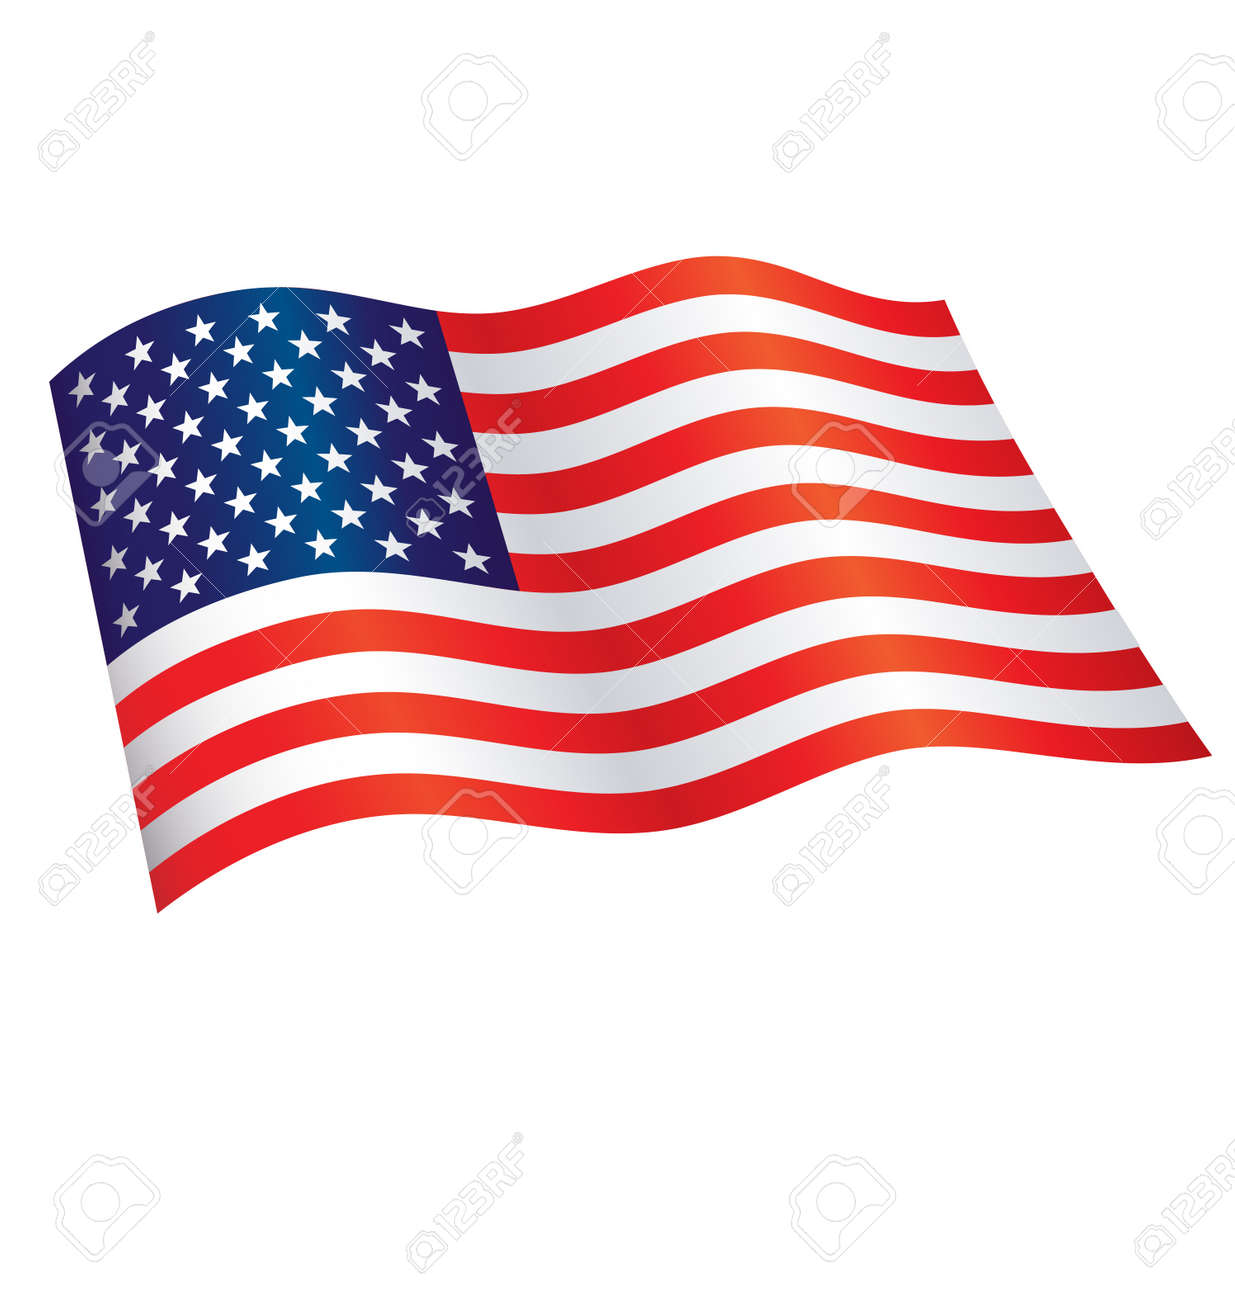 American Star Spangled Banner Flag of united states of america flying waving flowing usa vector - 167052079